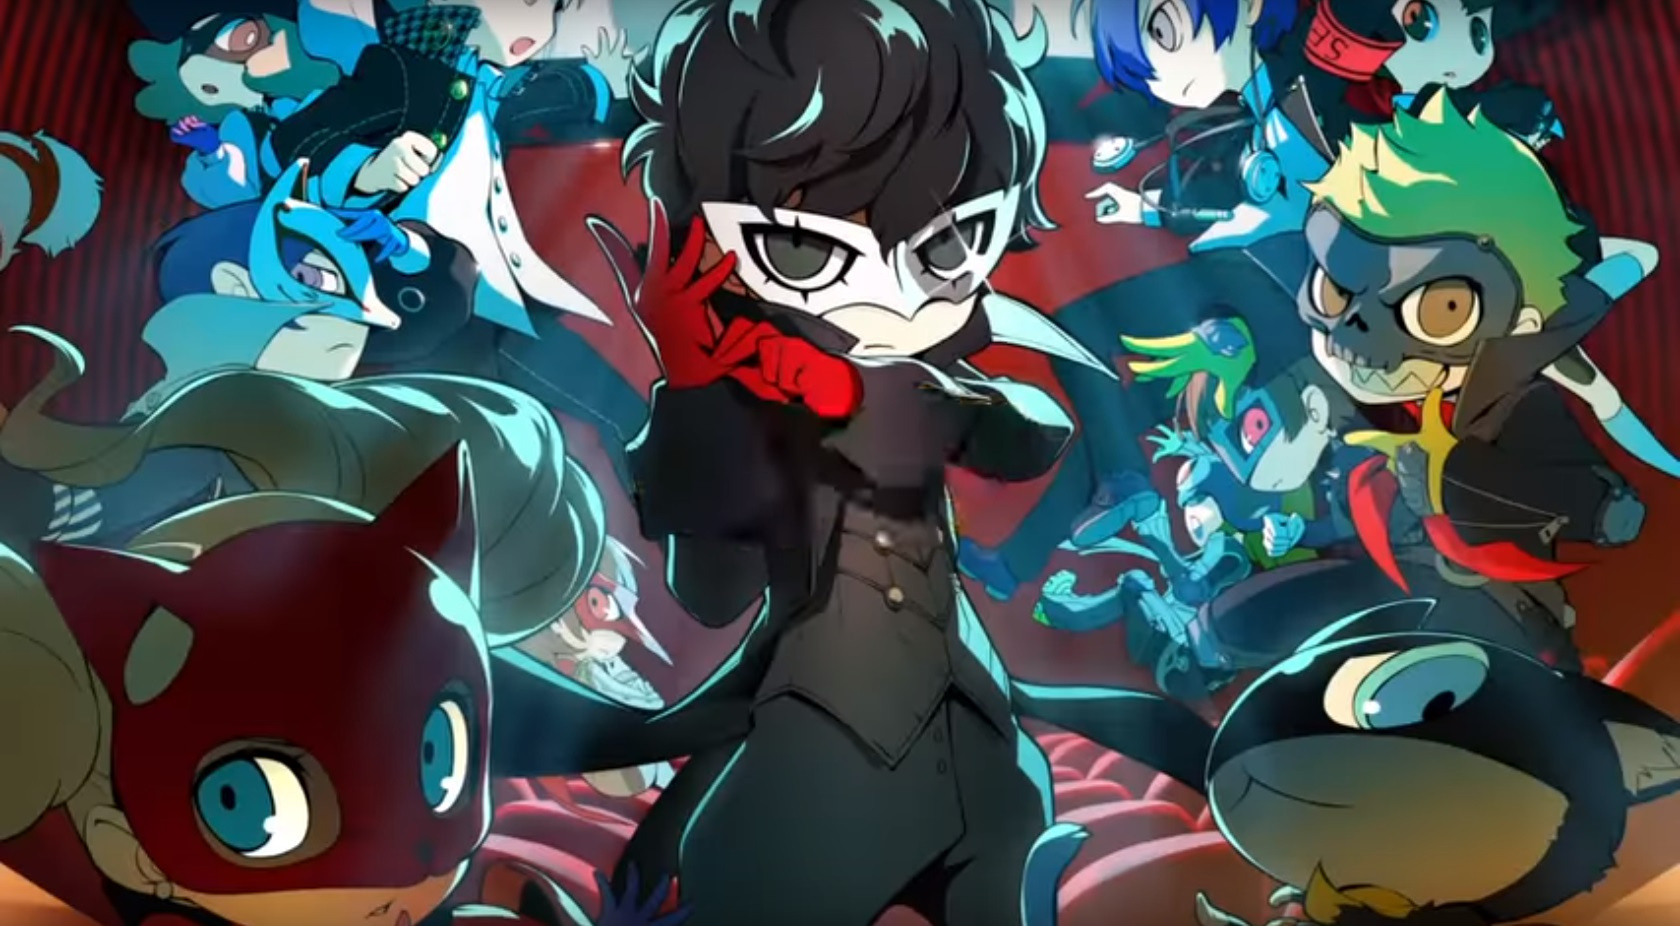 Persona Q2: New Cinema Labyrinth Rated By The Australian